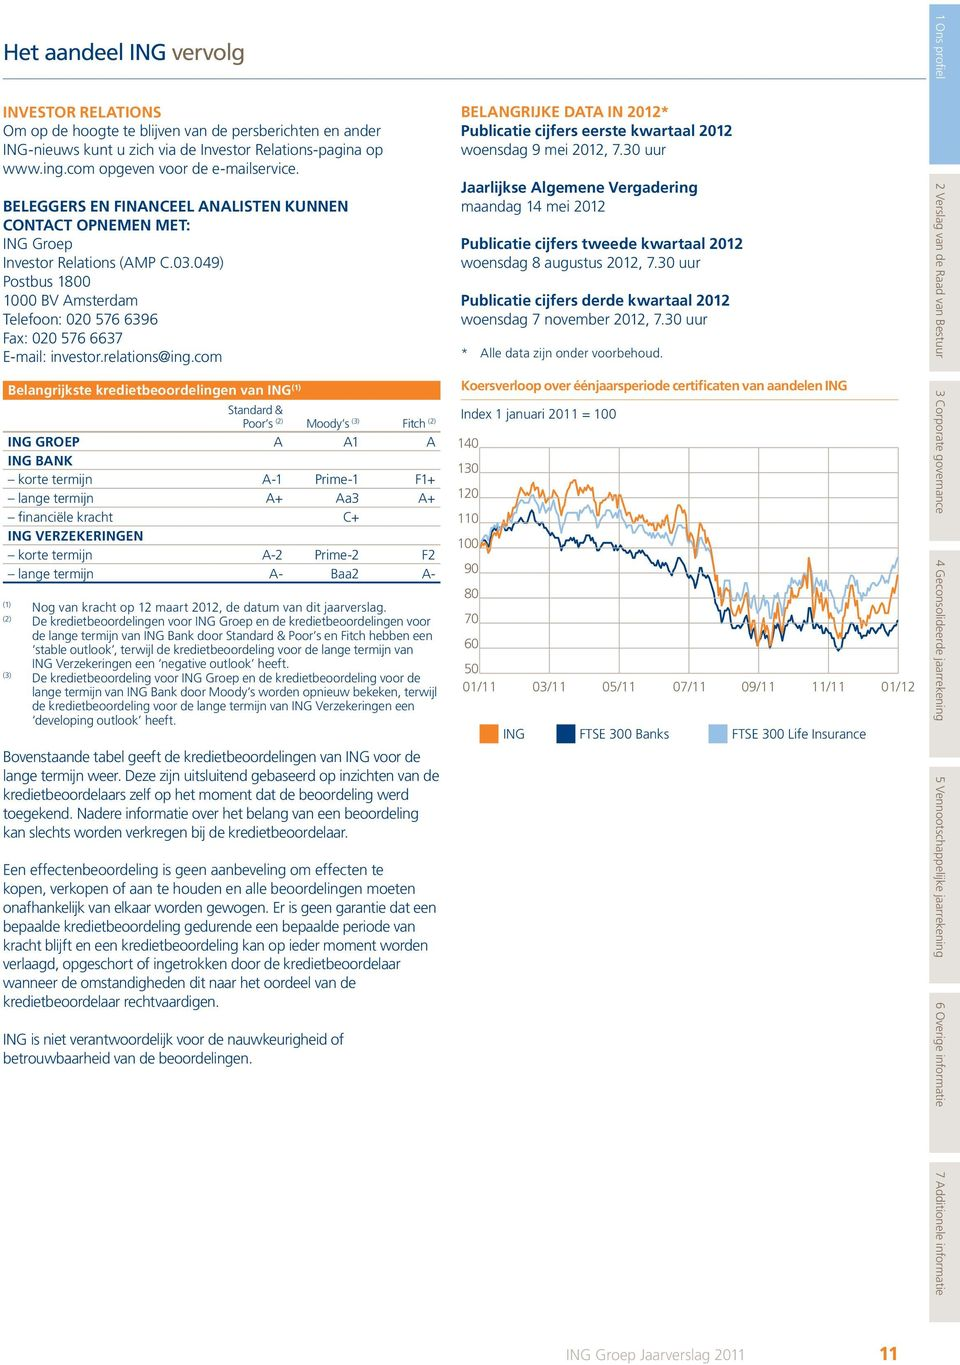 049) Postbus 1800 1000 BV Amsterdam Telefoon: 020 576 6396 Fax: 020 576 6637 E-mail: investor.relations@ing.